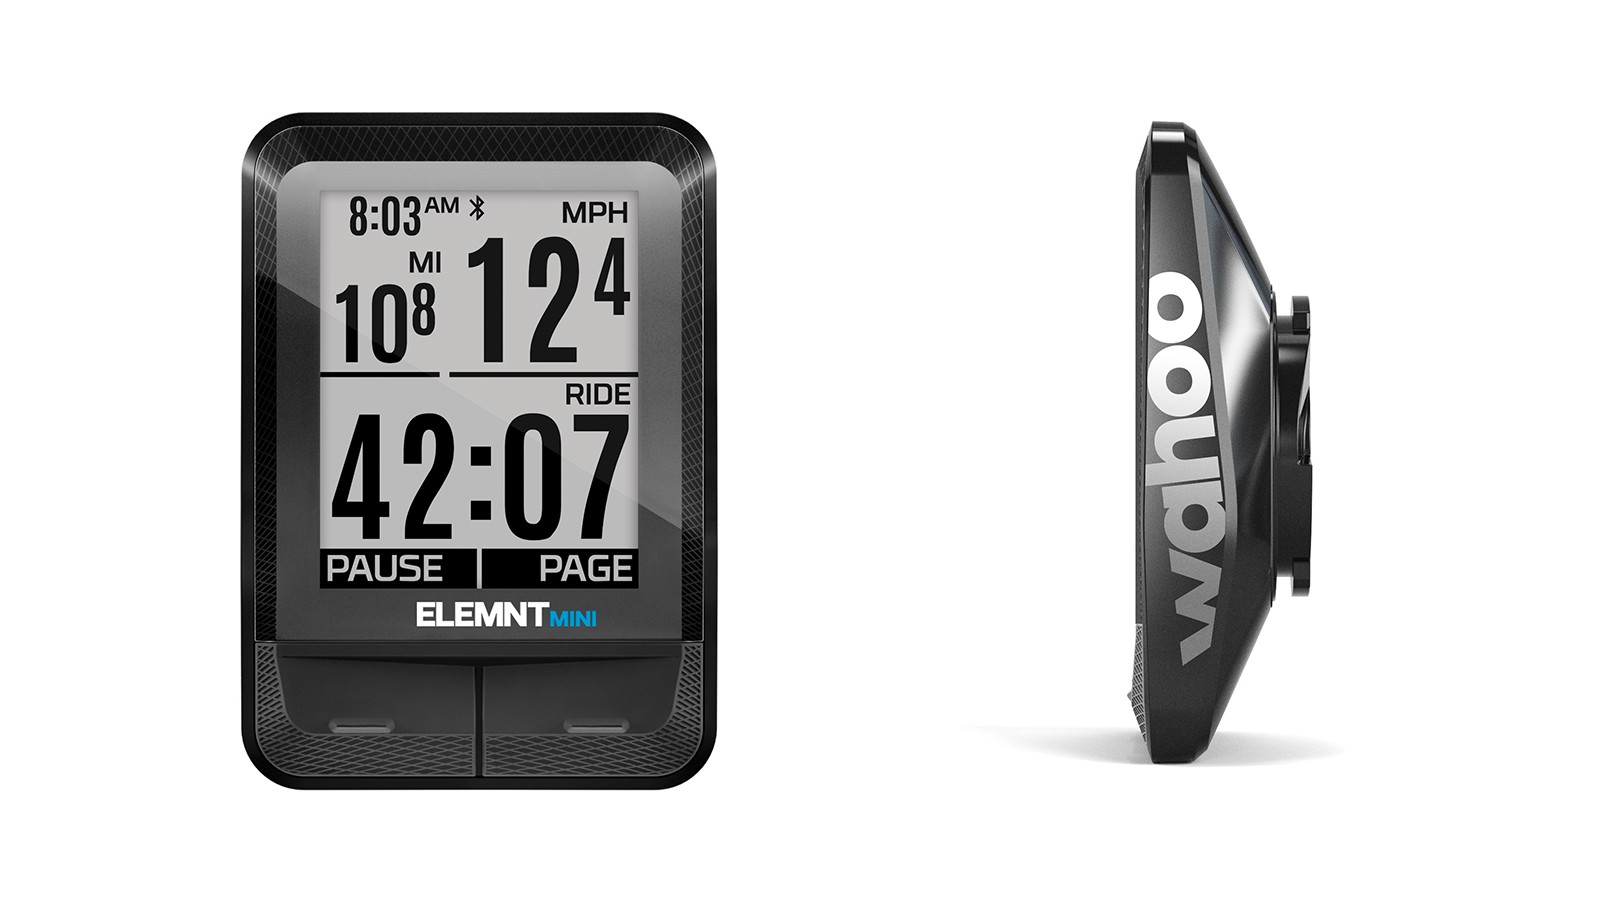 The Wahoo Elemnt Mini shows three data lines plus the time, and weighs a claimed 31.2g / 1.1oz